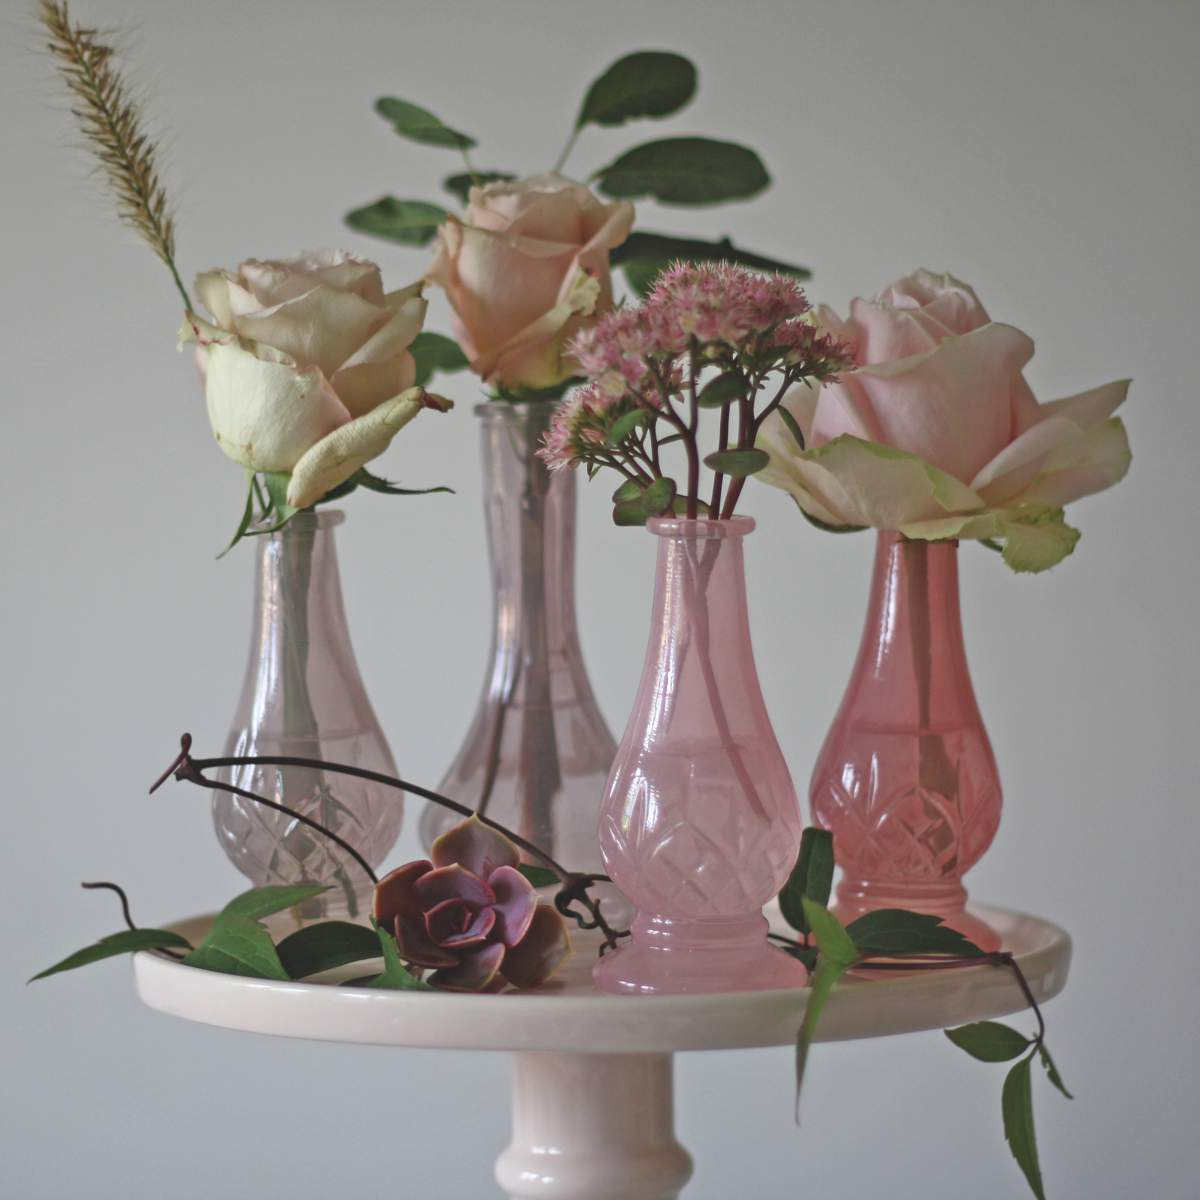 LIFESTYLE The Wedding of my Dreams Dainty Pink Glass Bud Vases ú20 for 4 (1)